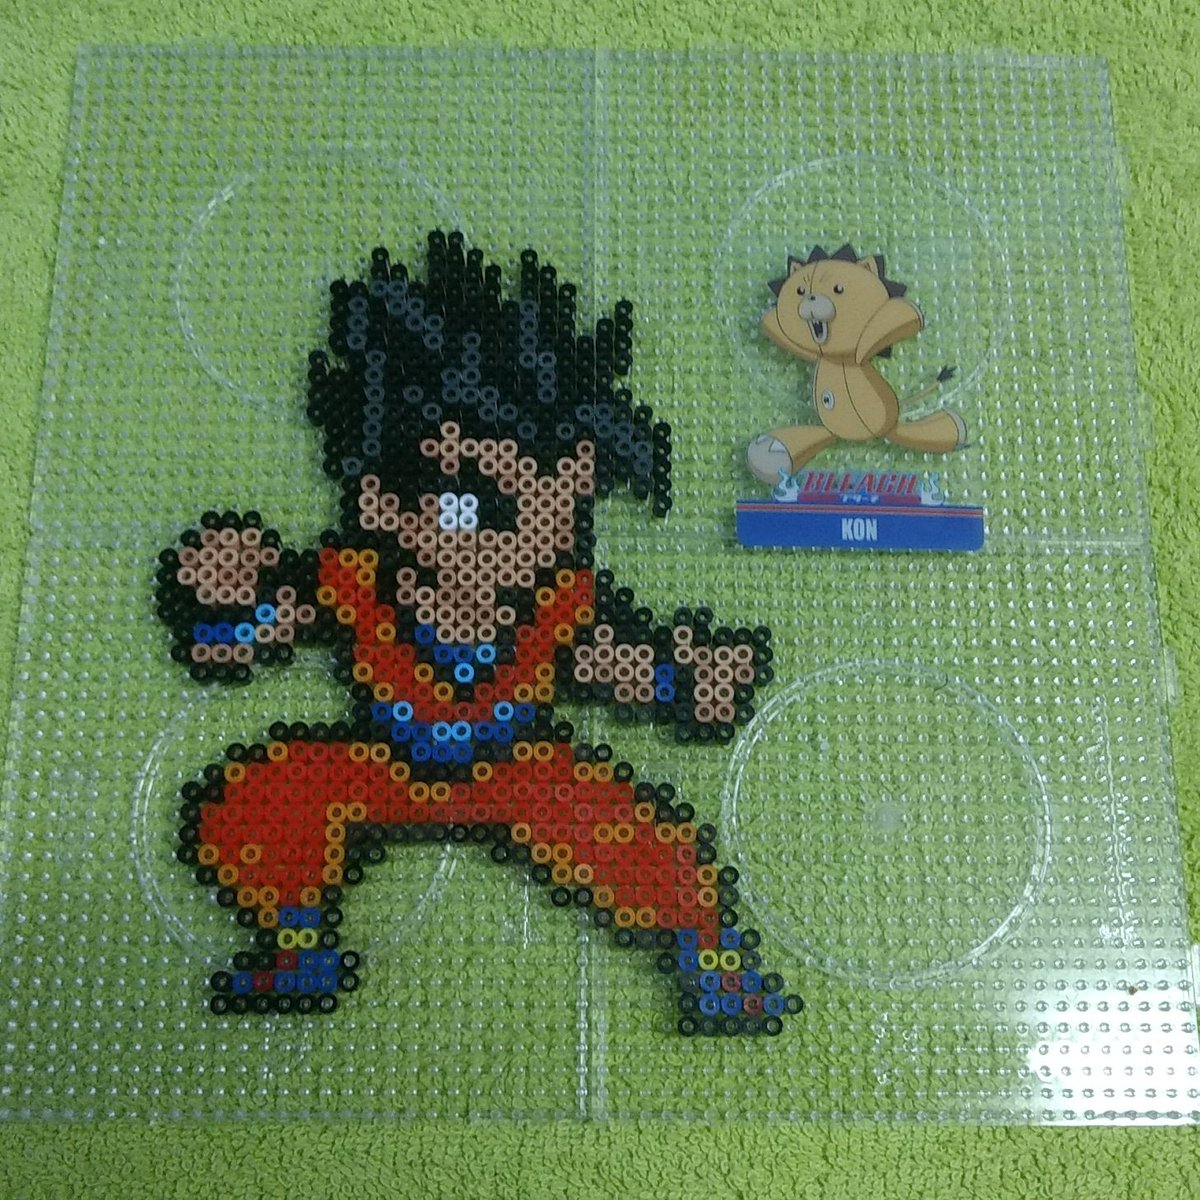 Wasabi Pixel Art Shop On Twitter Son Gohan Dragon Ball Z